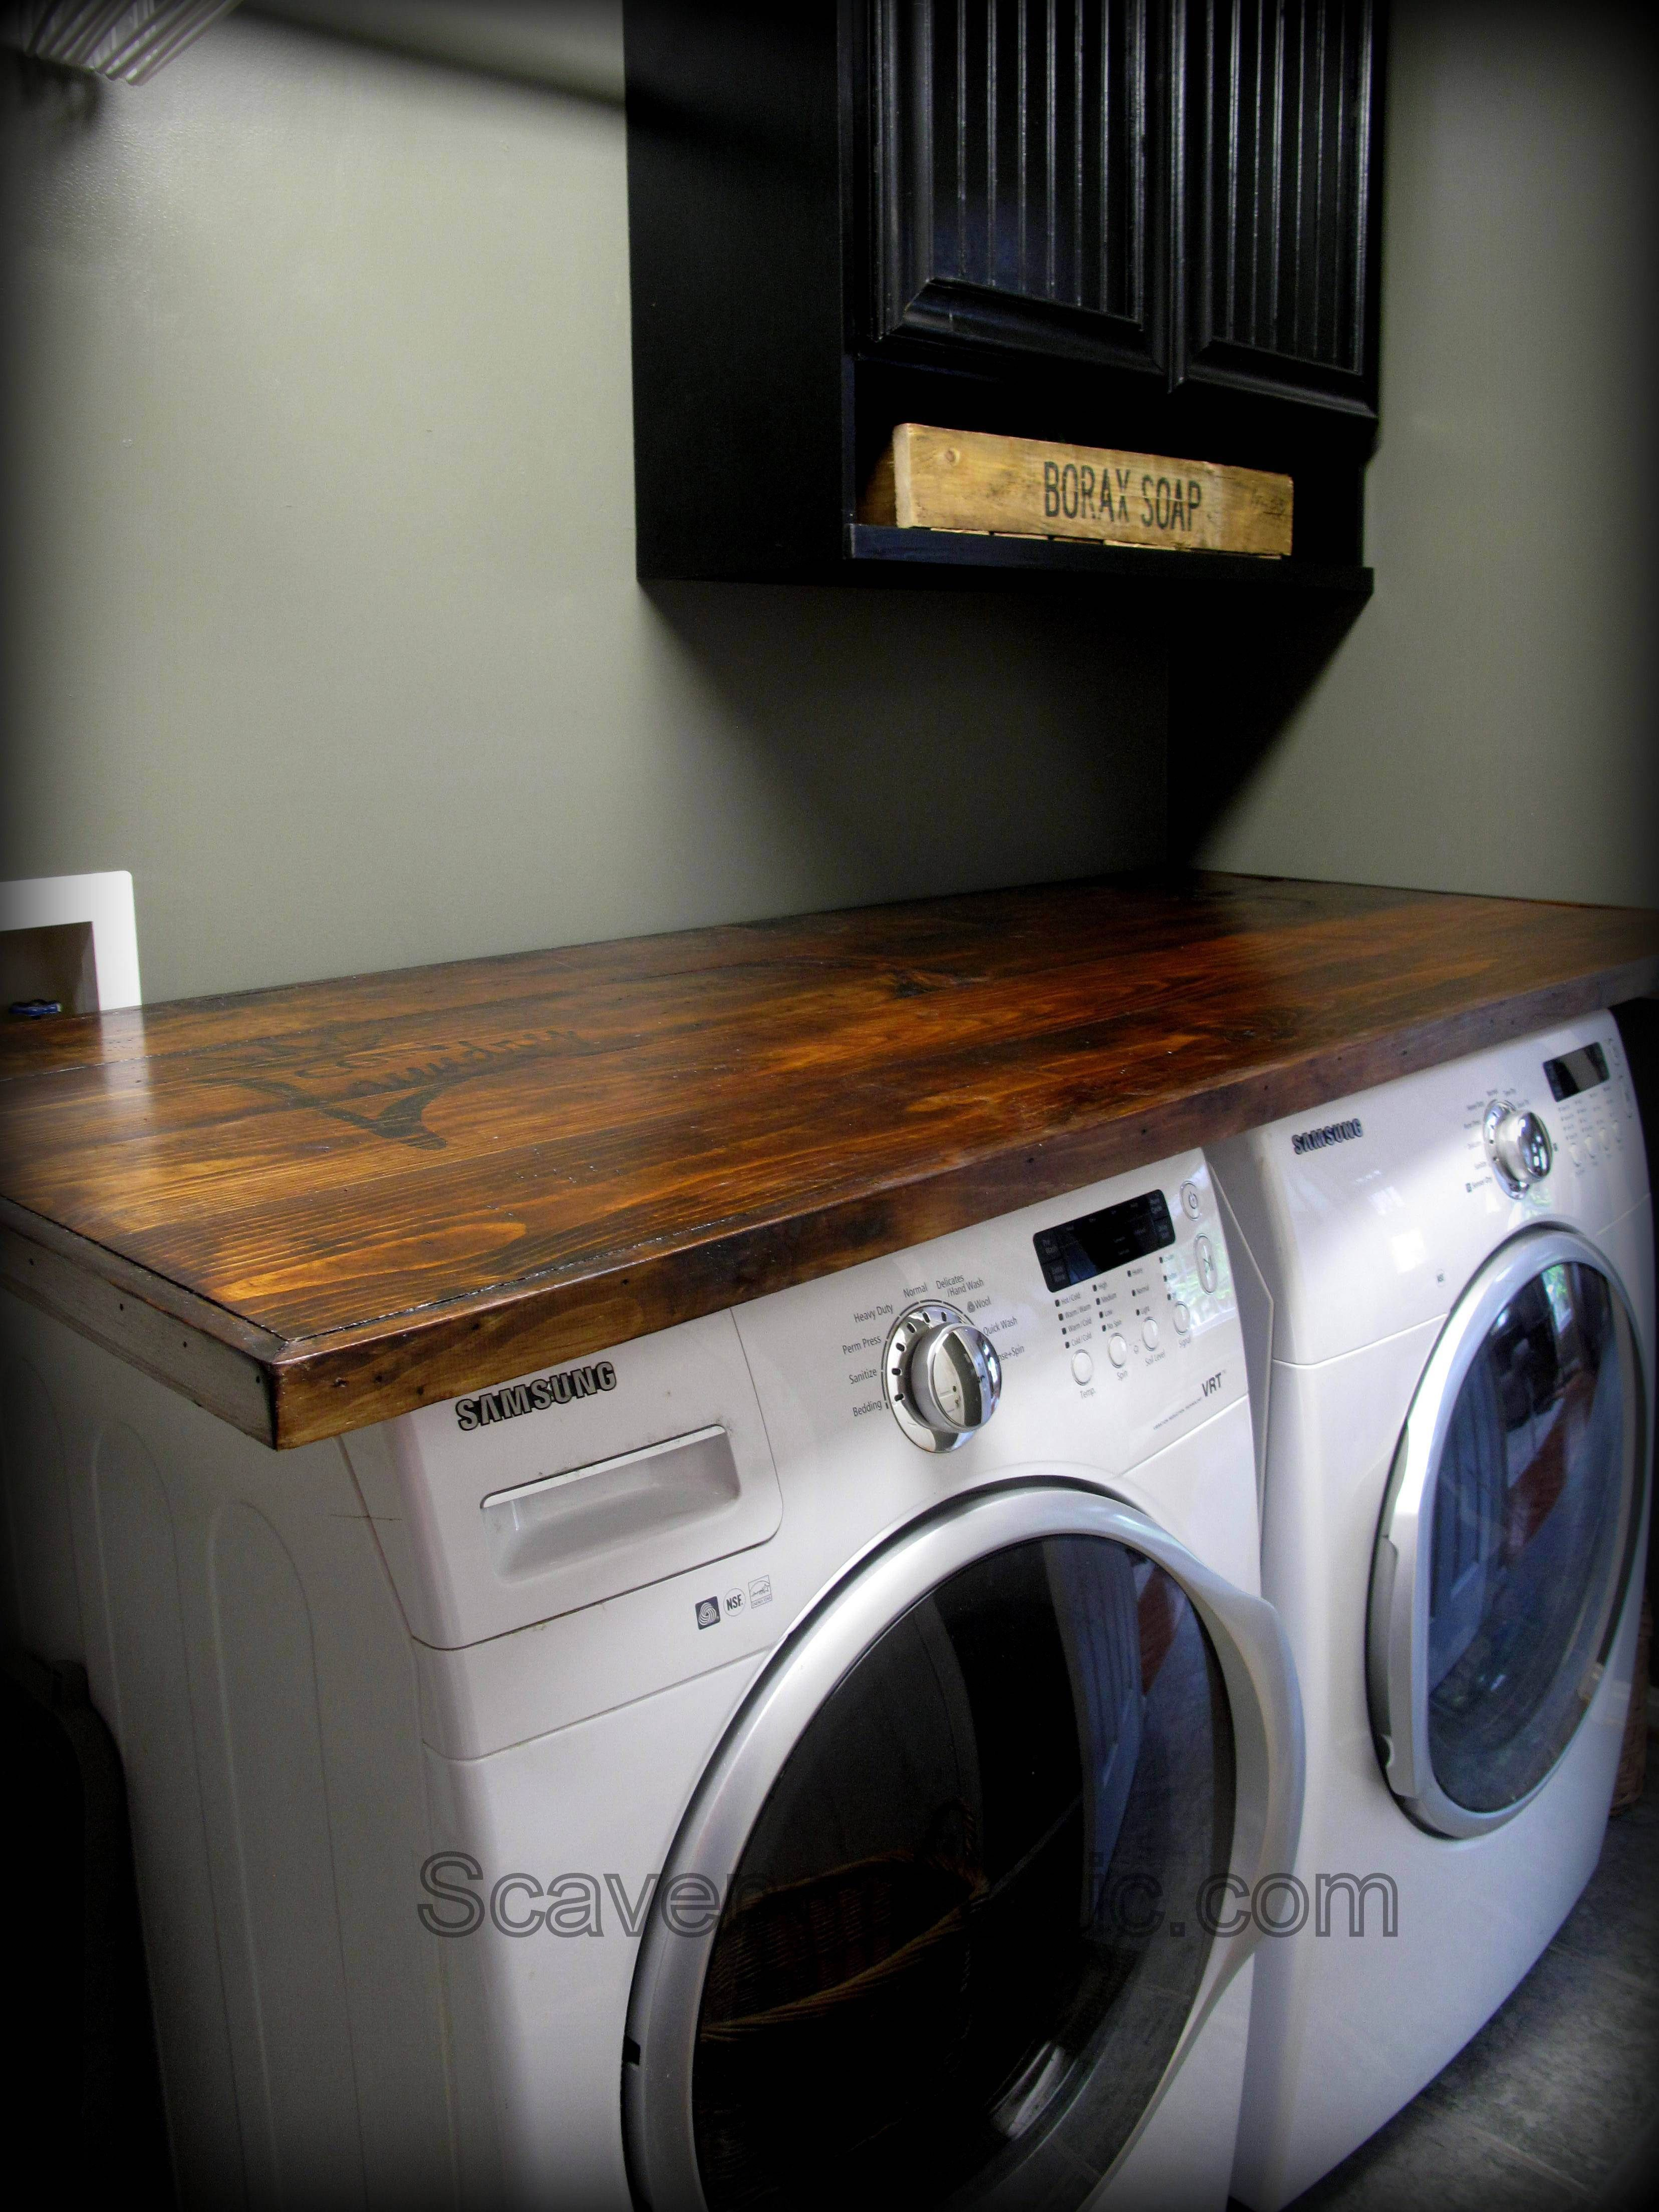 How To Make Your Own Laundry Wood Countertop